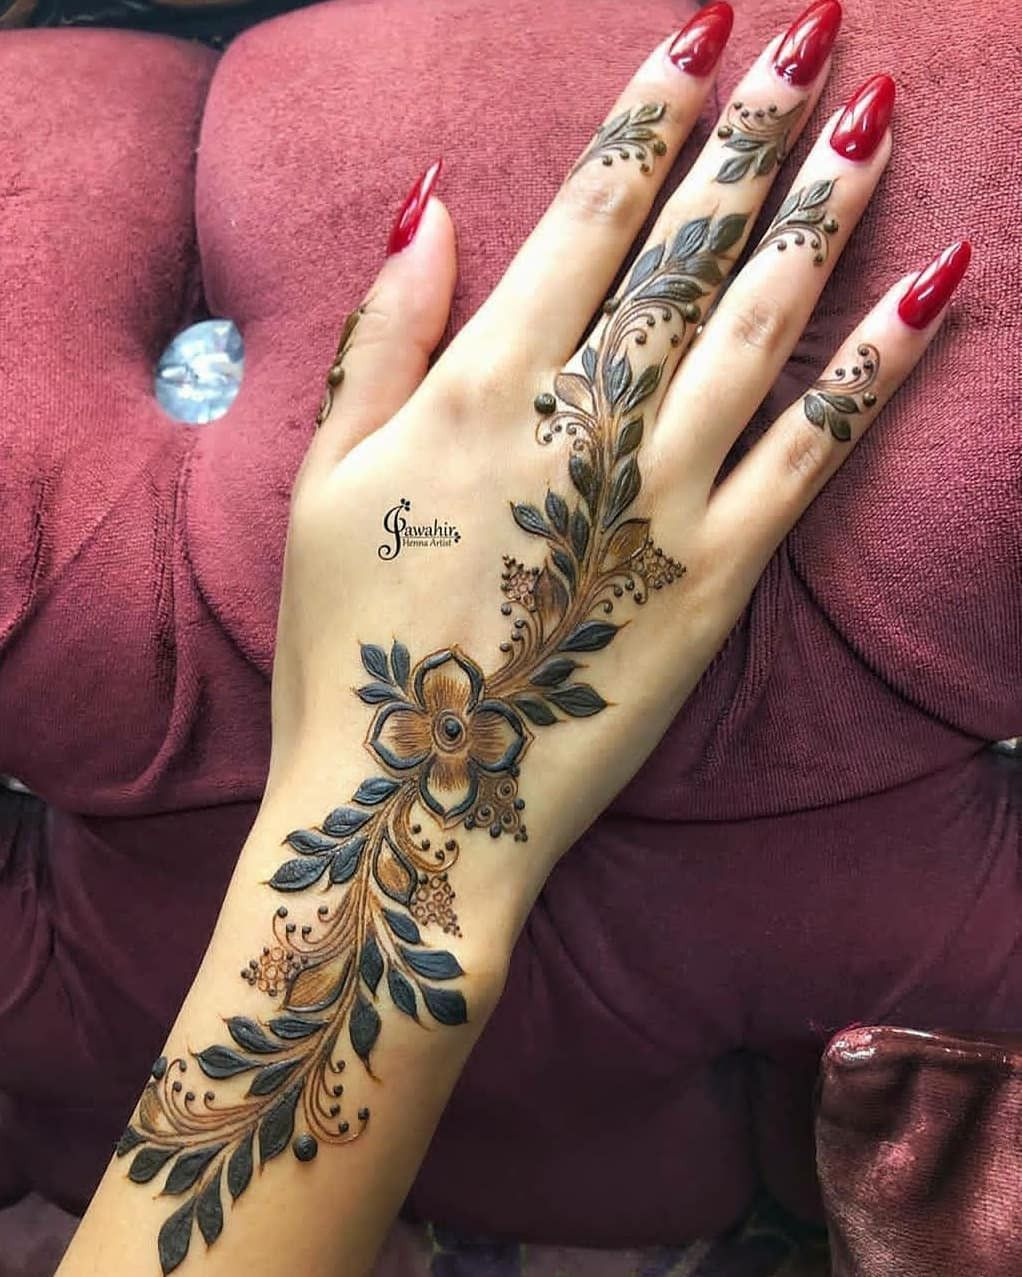 42 Trendy Henna Tattoo Design Ideas To Try In 2020 Henna Tattoo Designs Henna Tattoo Wrist Henna